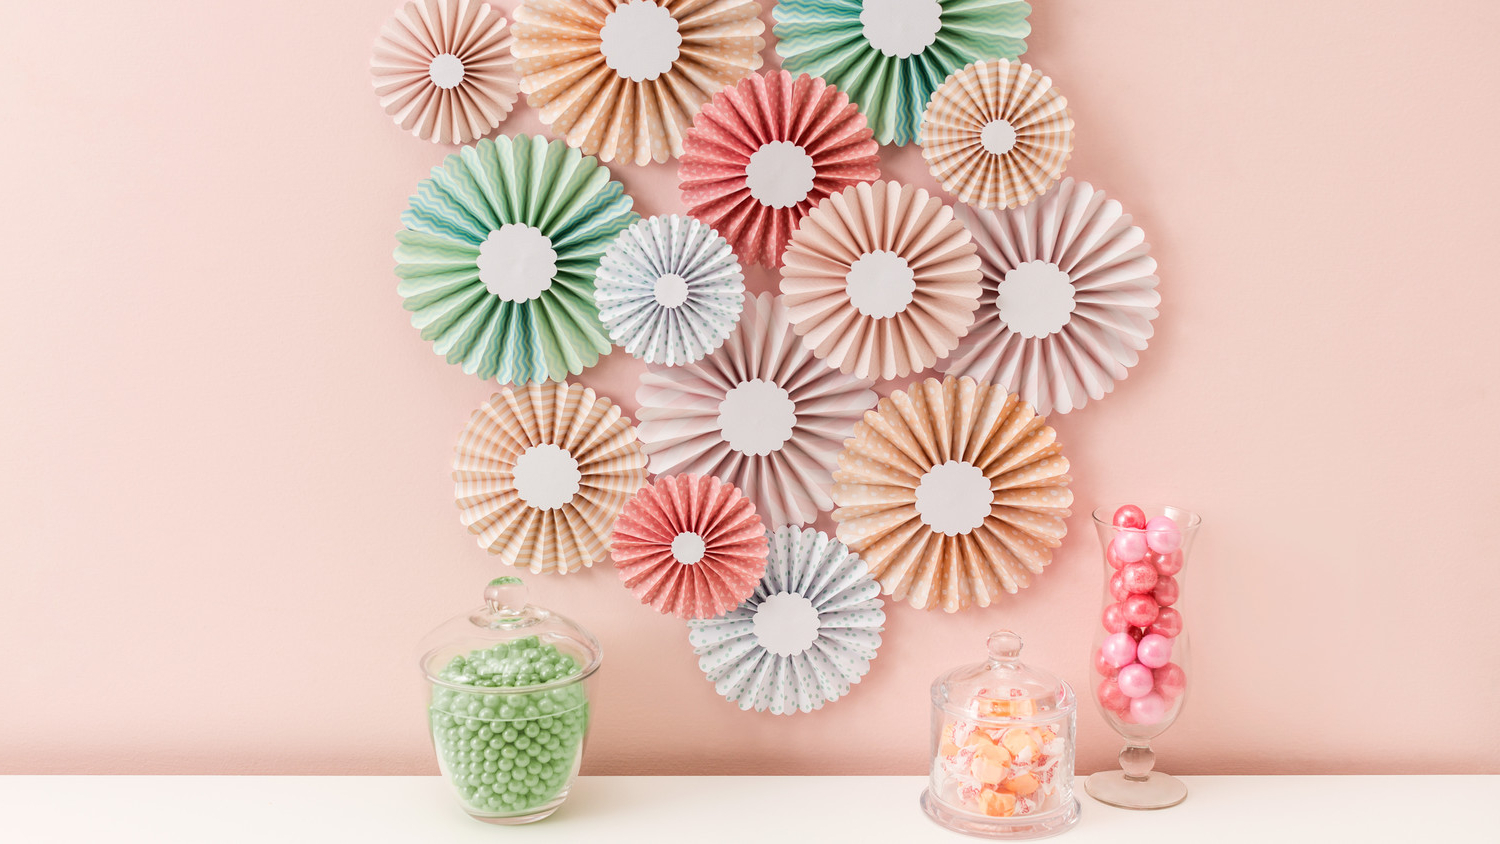 Preferred Amazing Deal On Willa Arlo Interiors Sunburst Wall Mirror Wrlo5570 Throughout Starburst Wall Decor By Willa Arlo Interiors (View 8 of 20)